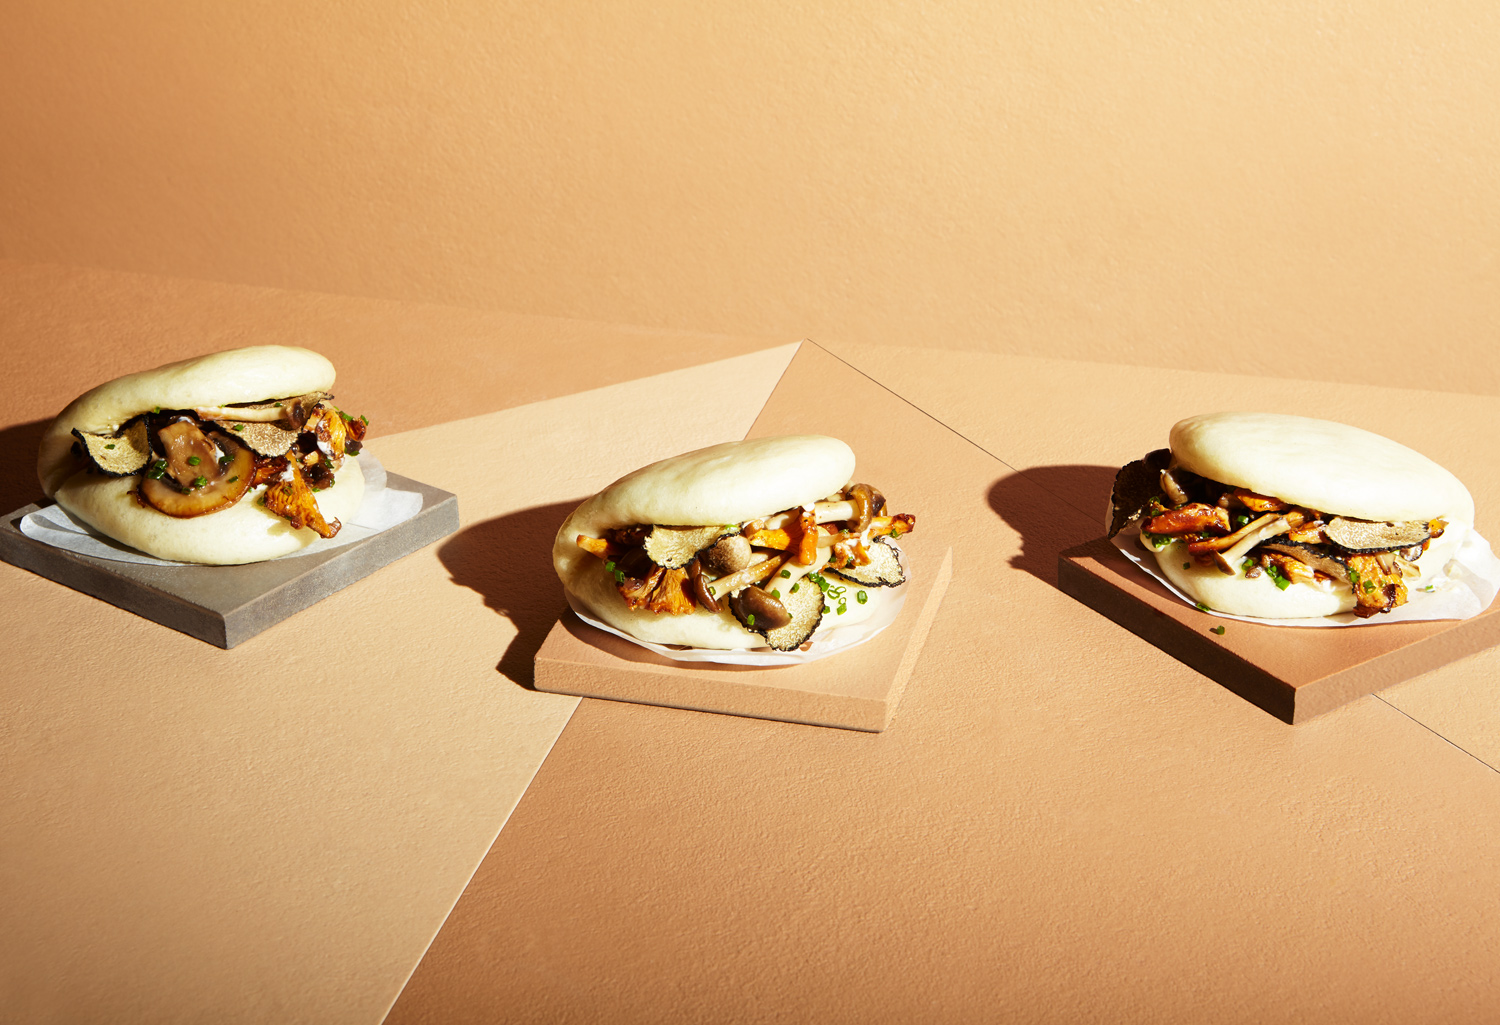 katie hammond photography buns and buns still life food bao